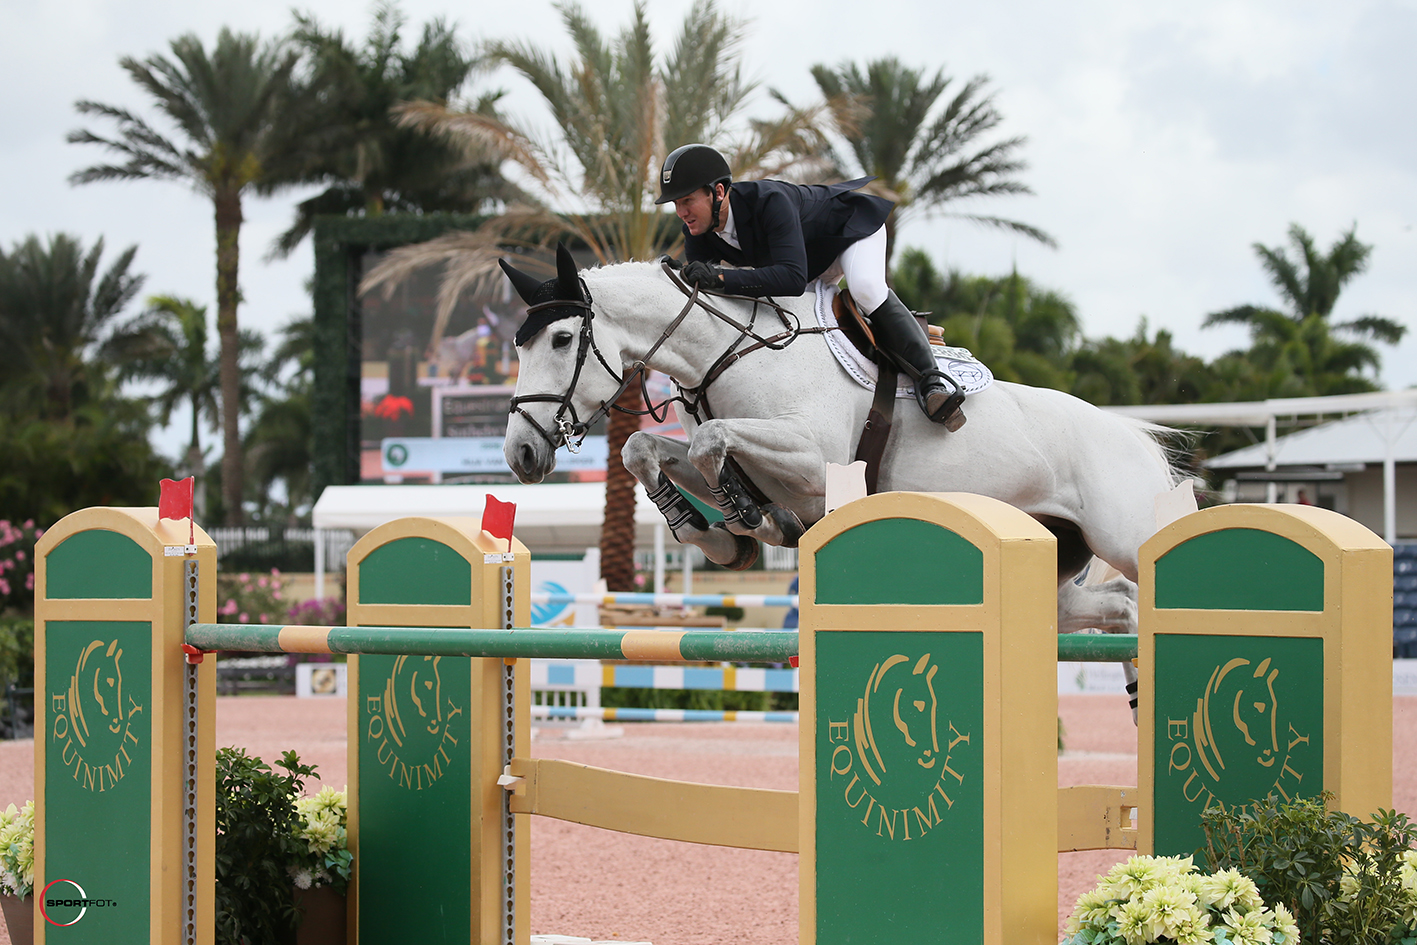 McLain Ward and Hija van Strokapelleken 312_3066 Sportfot